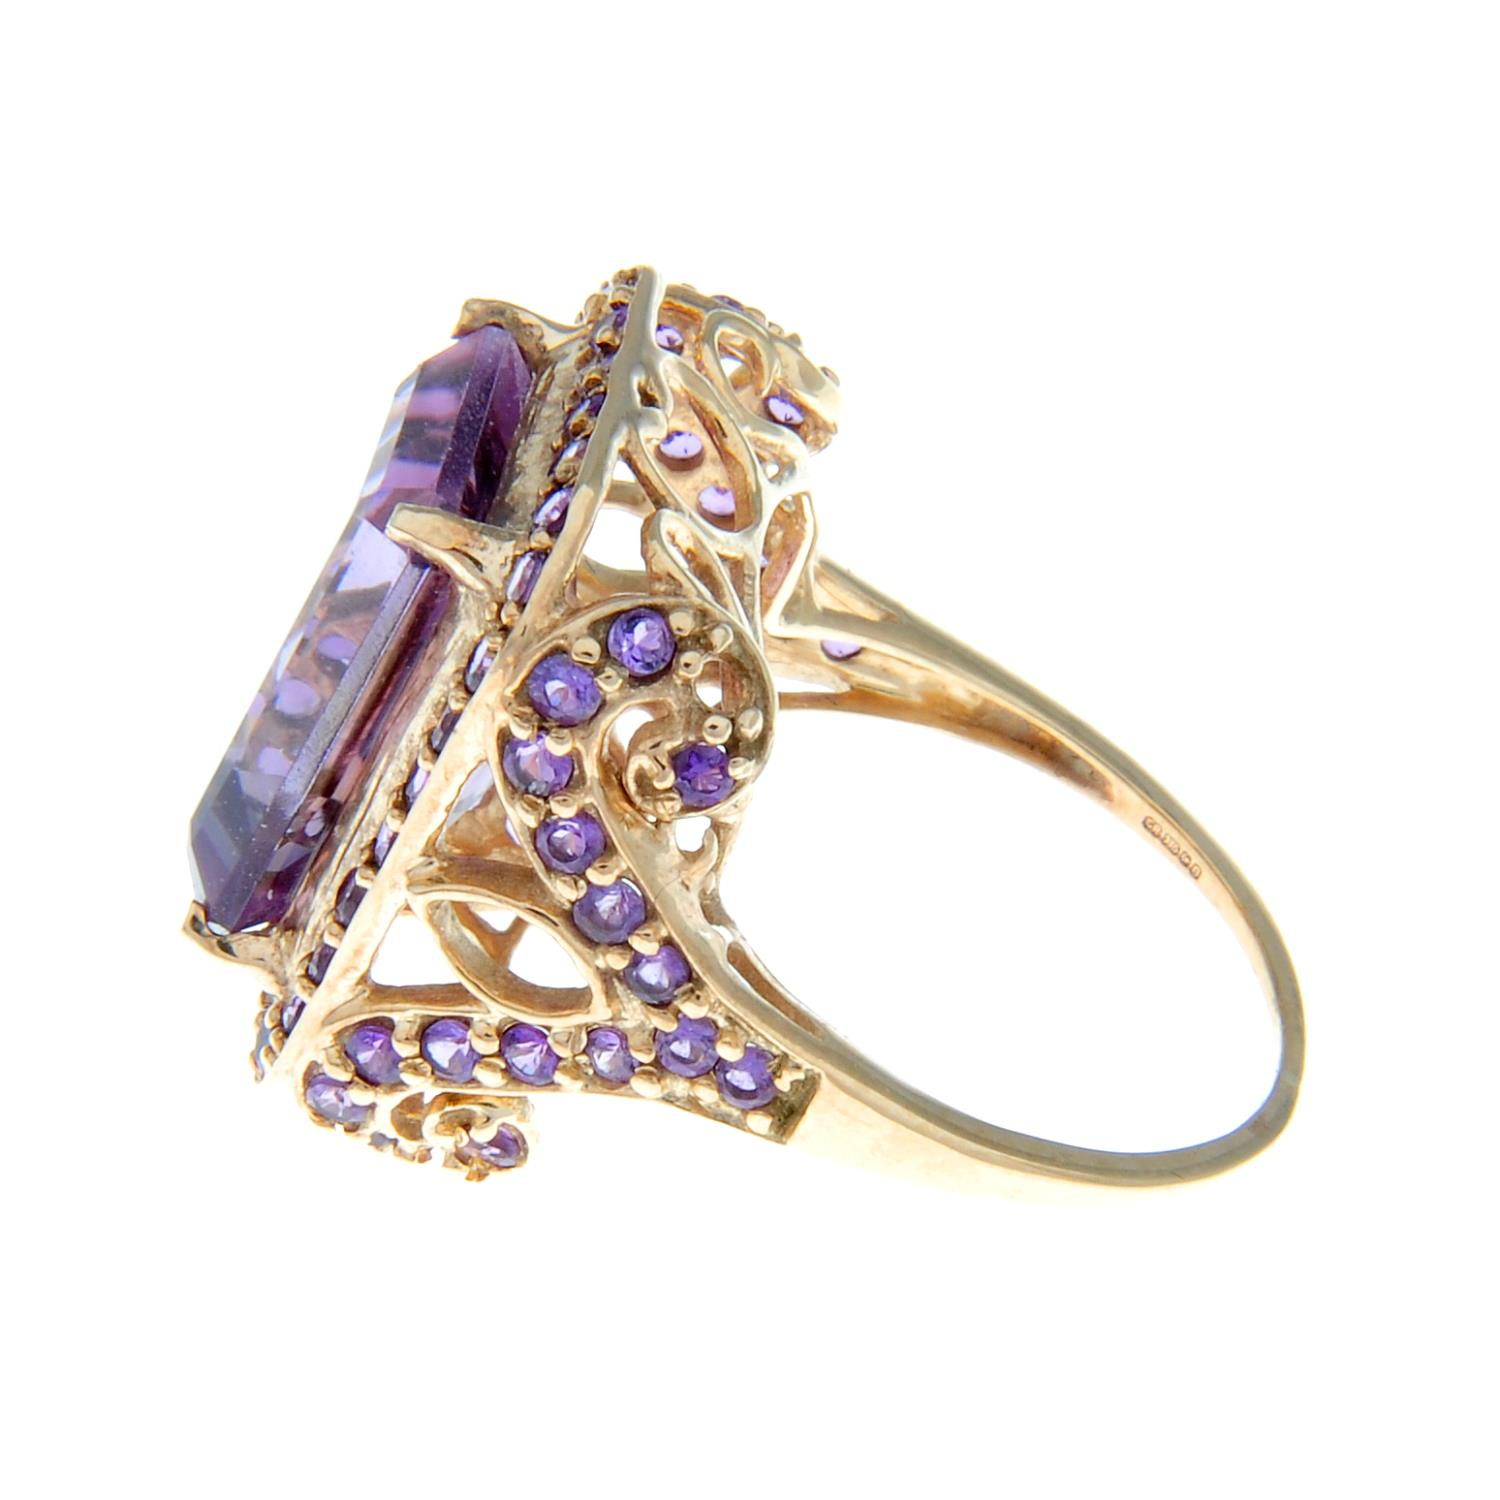 A 9ct gold amethyst dress ring. - Image 3 of 3